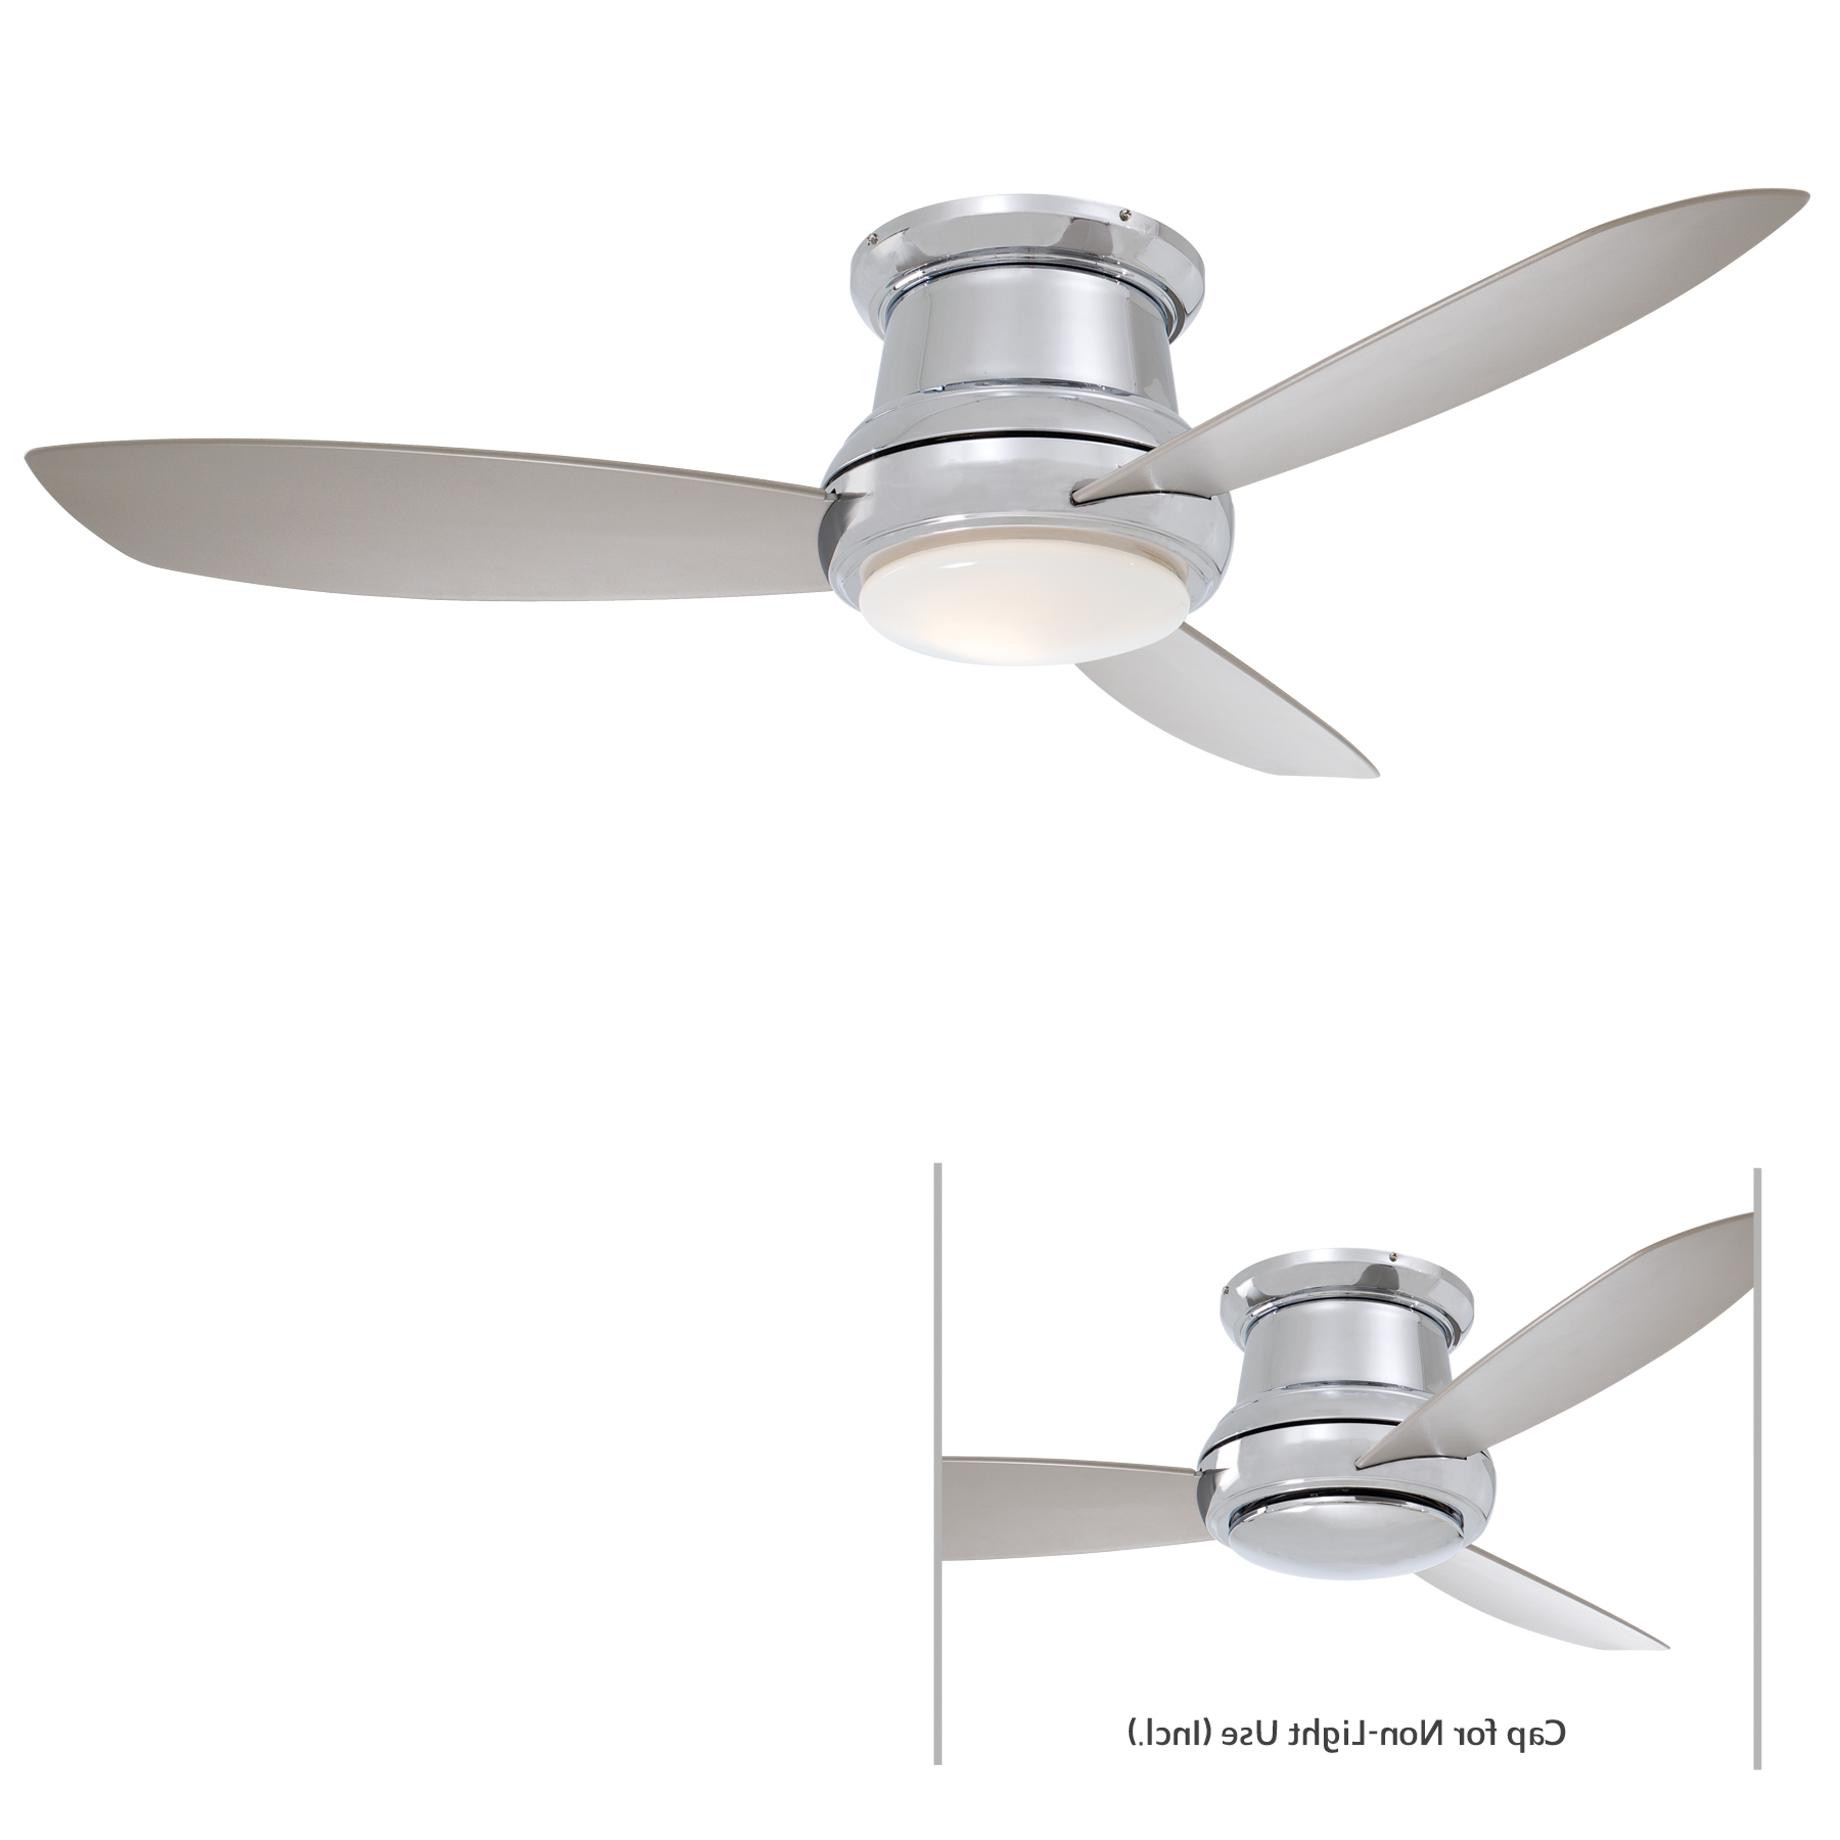 "Minka Aire Concept Ii 52"" Led Ceiling Fan Model F519L Pn In Pertaining To Trendy Concept Ii 3 Blade Led Ceiling Fans With Remote (View 6 of 20)"